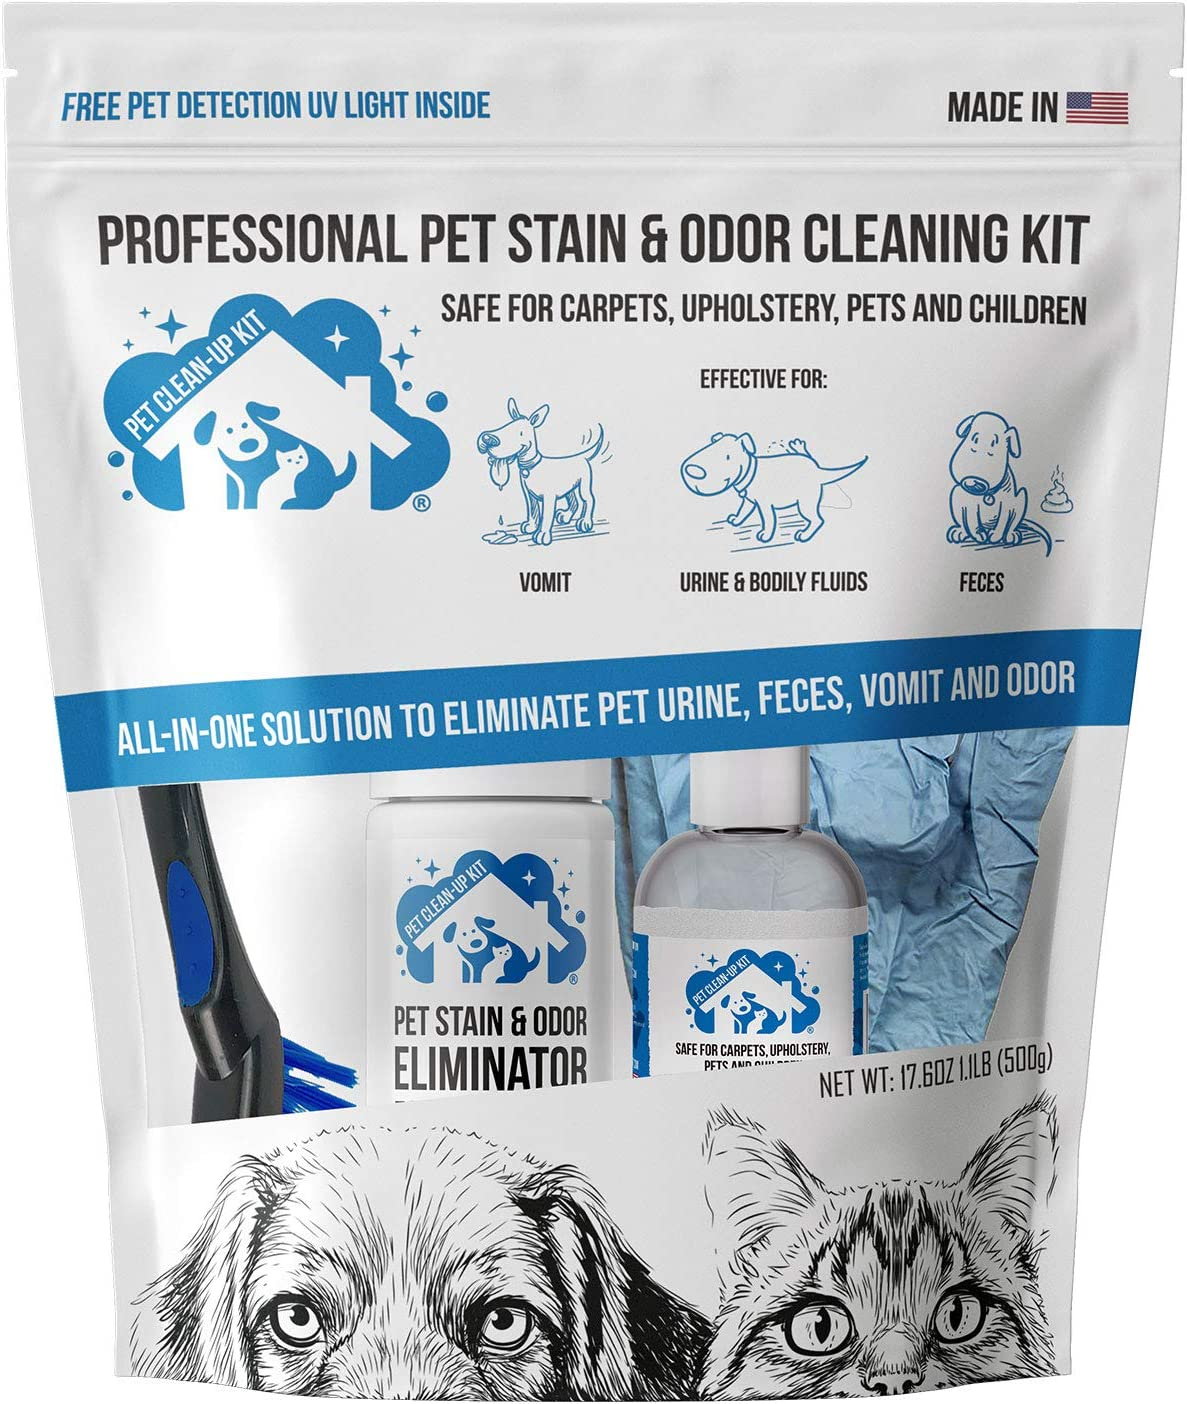 Professional Pet Stain & Odor Cleaning Kit | Carpet Stain Remover - Clean Dog and Cat Urine, Feces, Vomit - Eliminate Odor & Smell Instantly